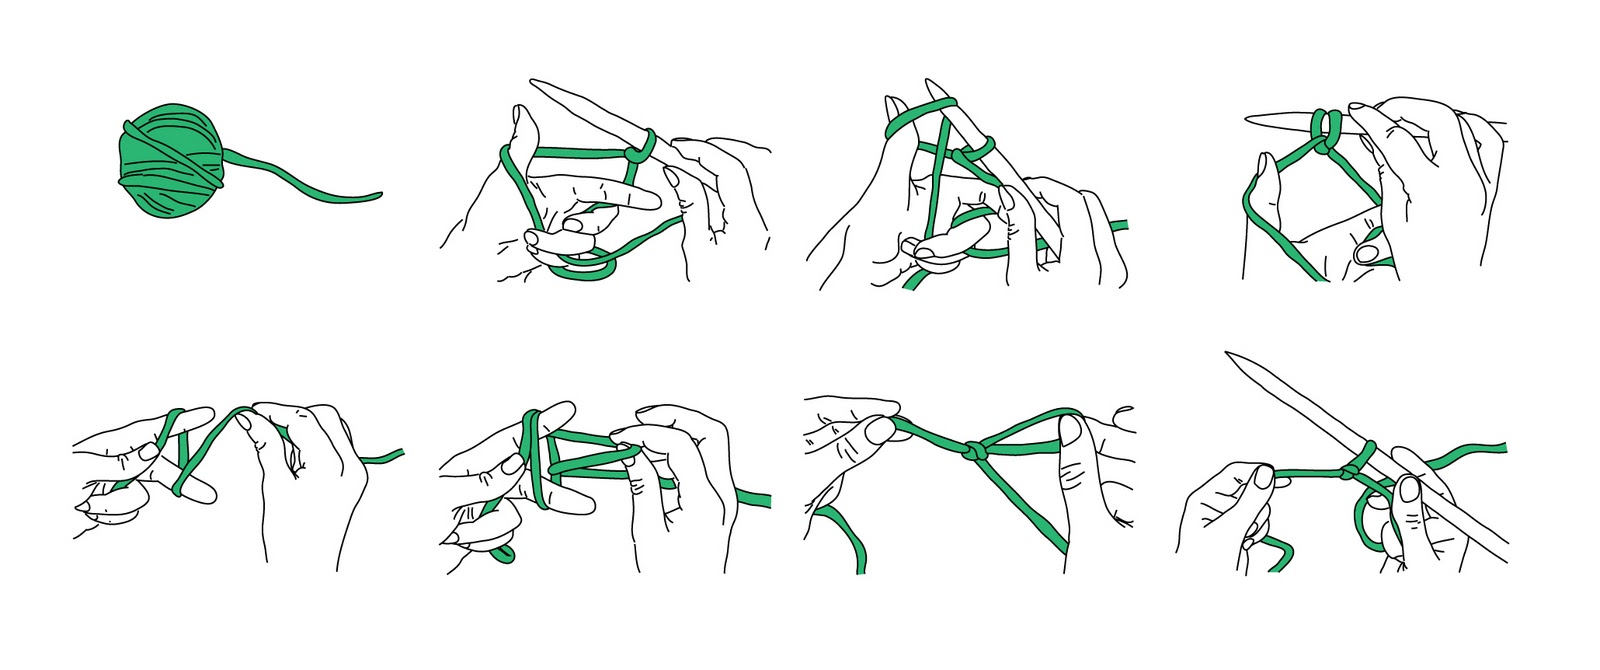 Knitting Needles Drawing : How to draw knitting needle